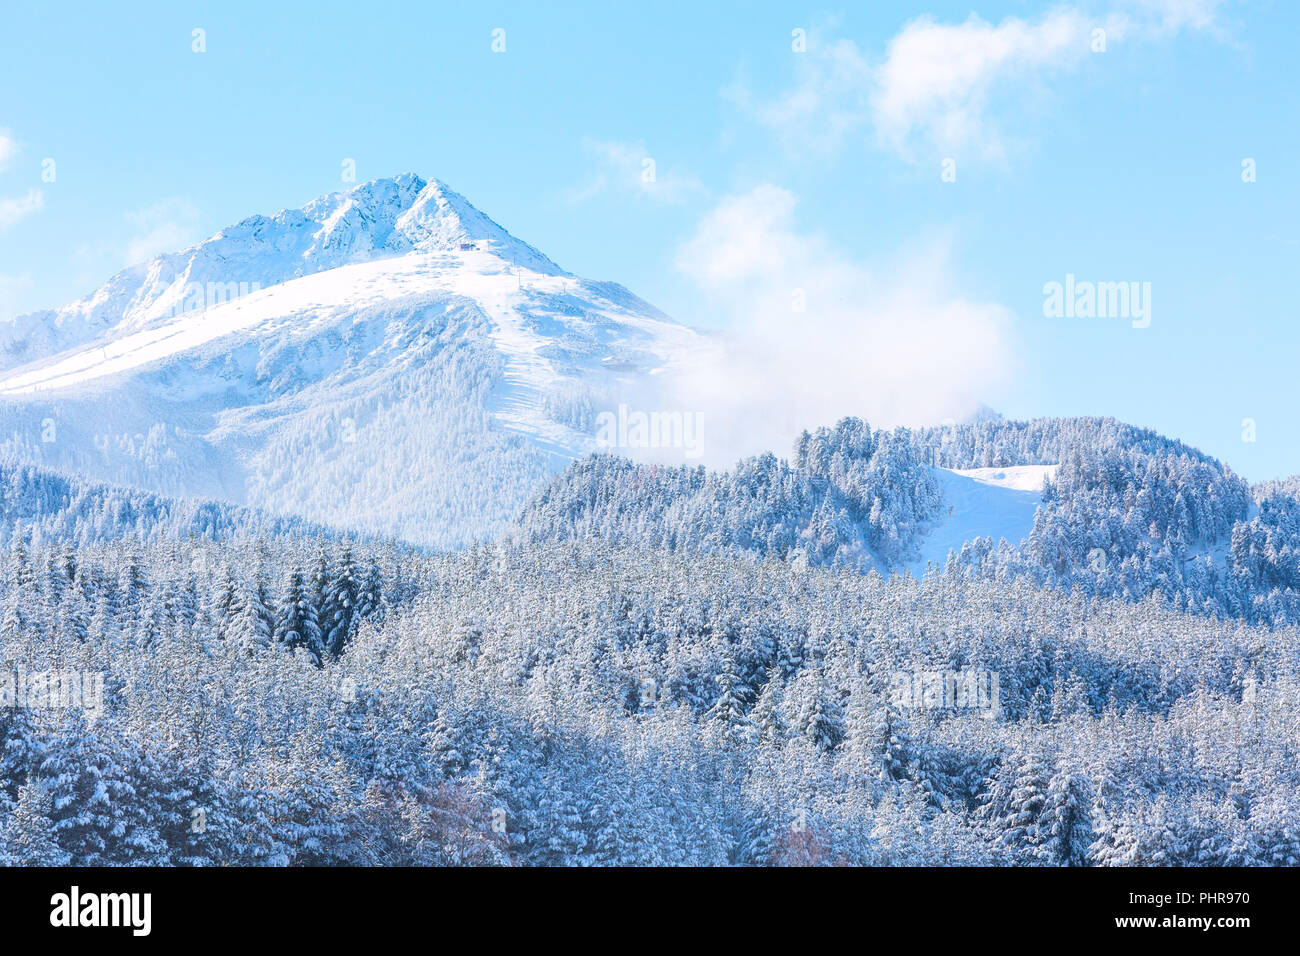 travel ski resort background with ski slopes panoramic view, snow